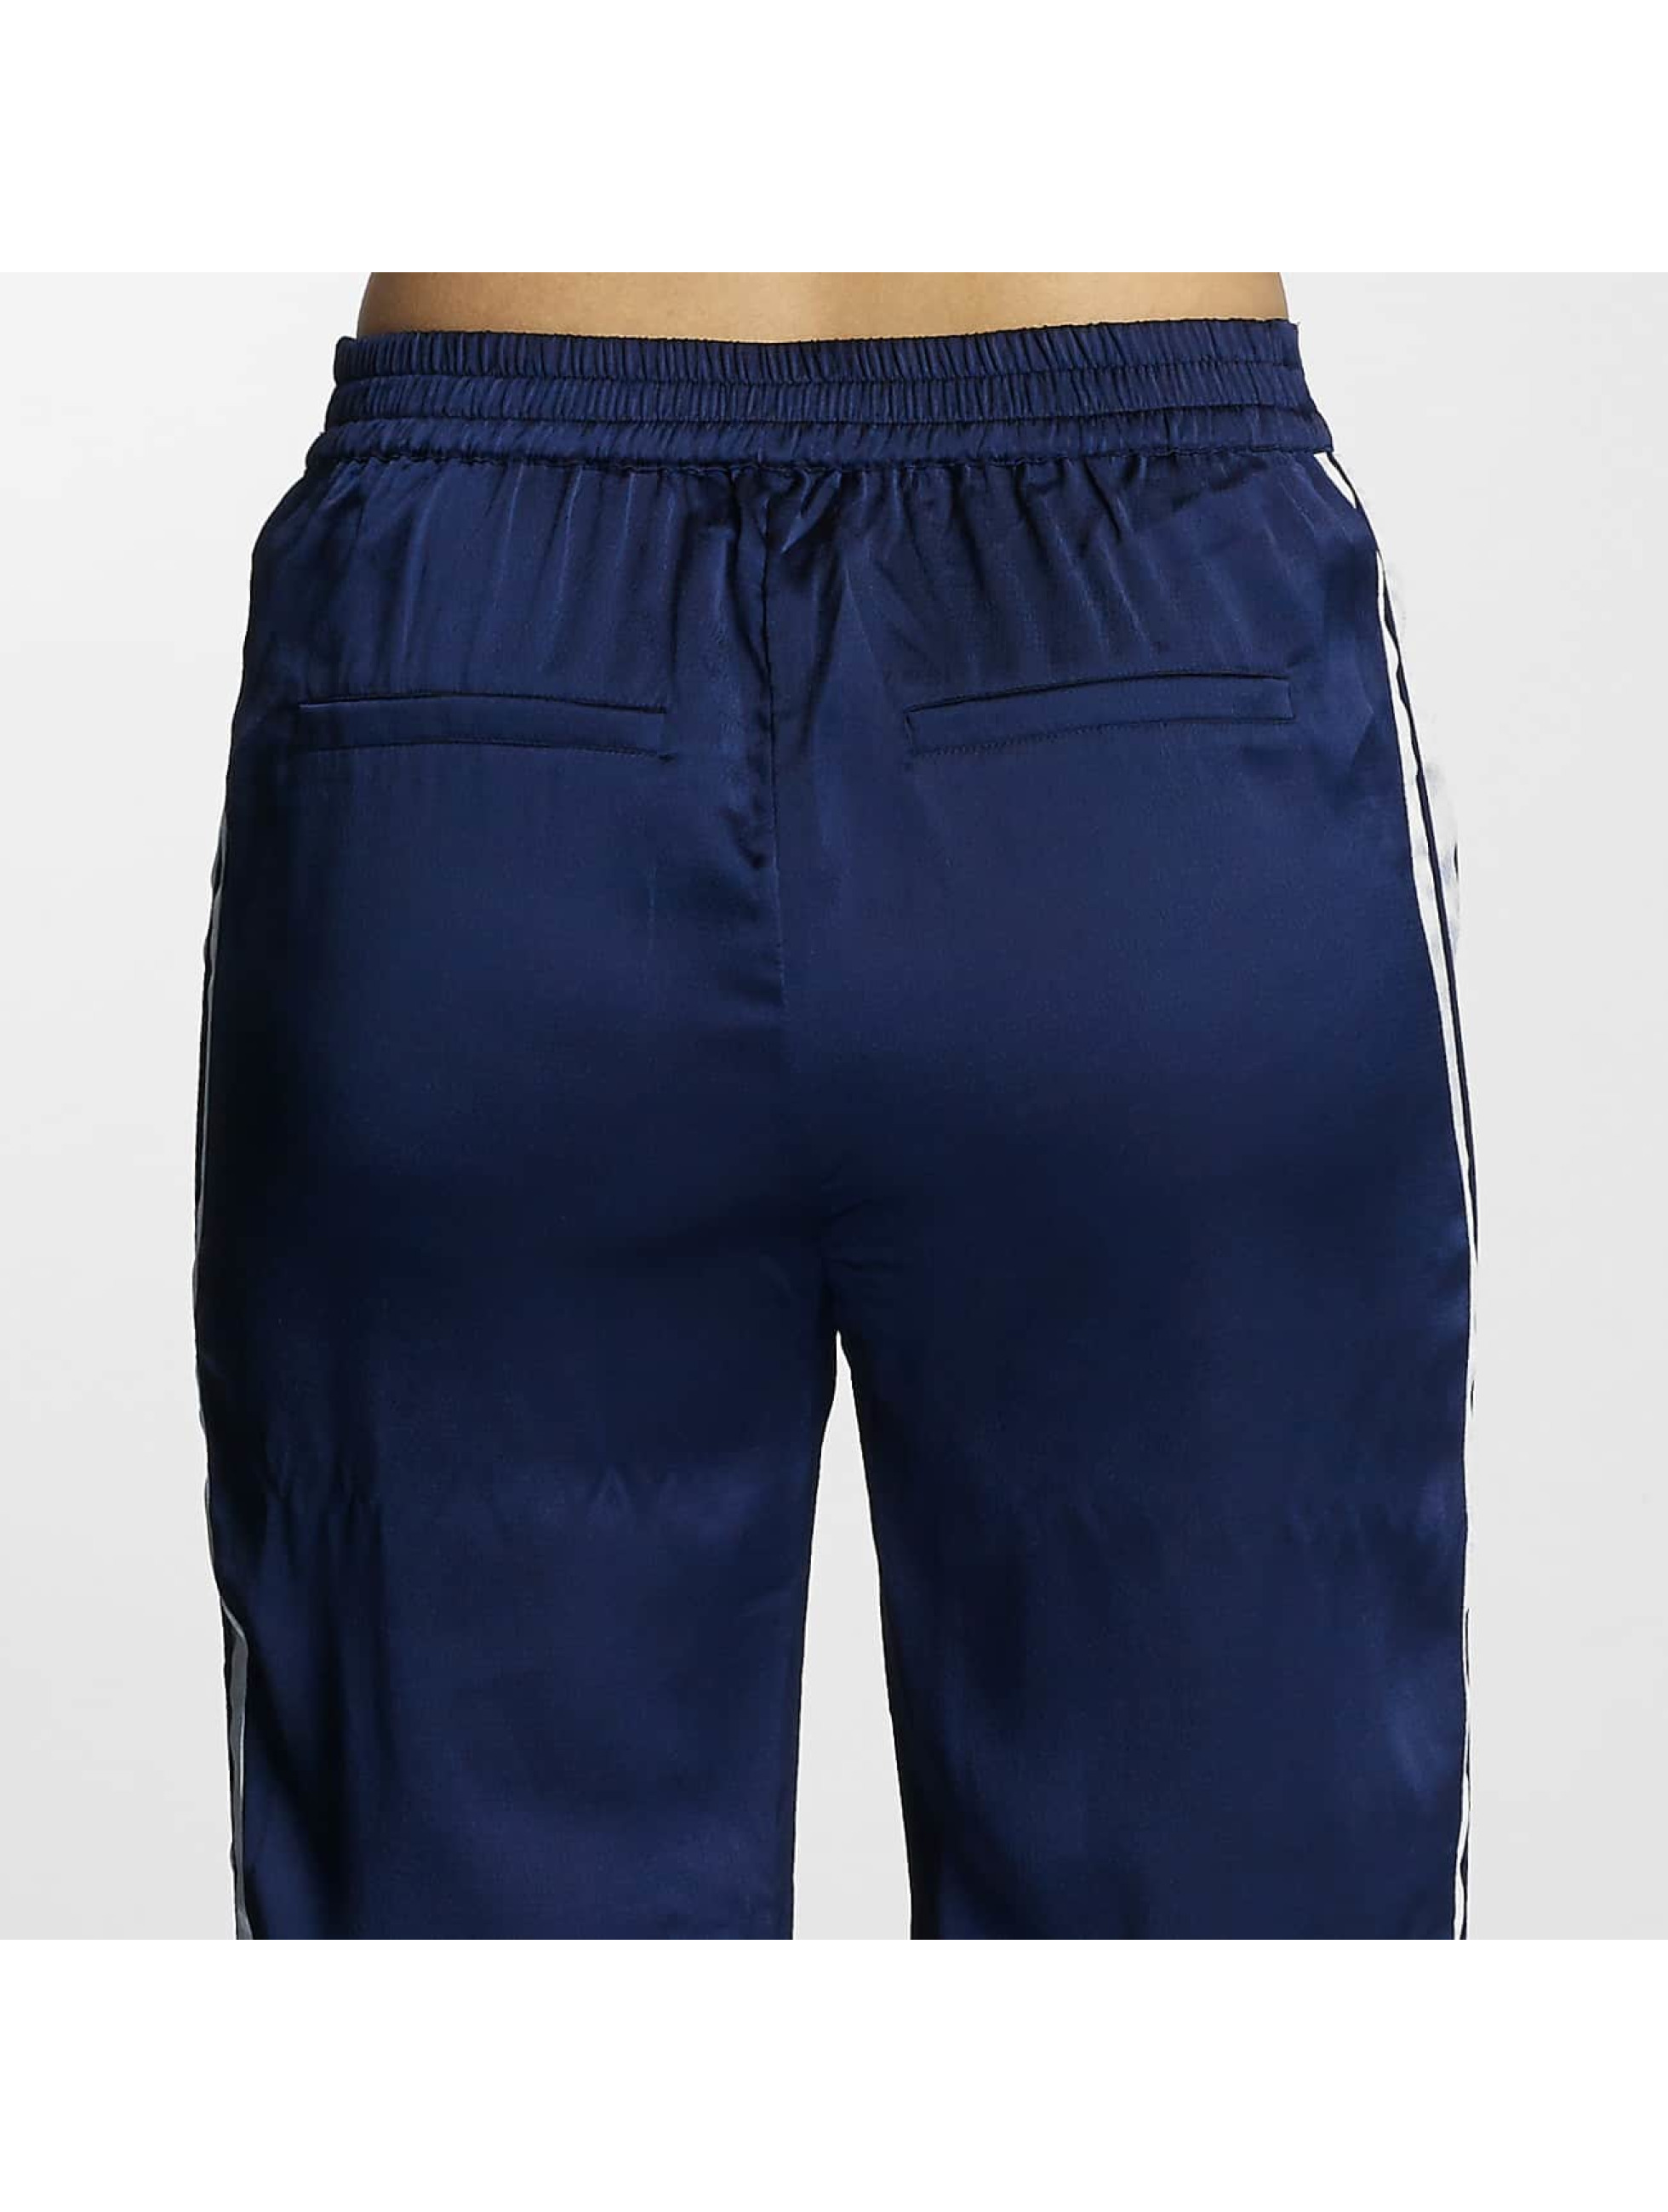 Pieces Pantalon chino pcEVE bleu